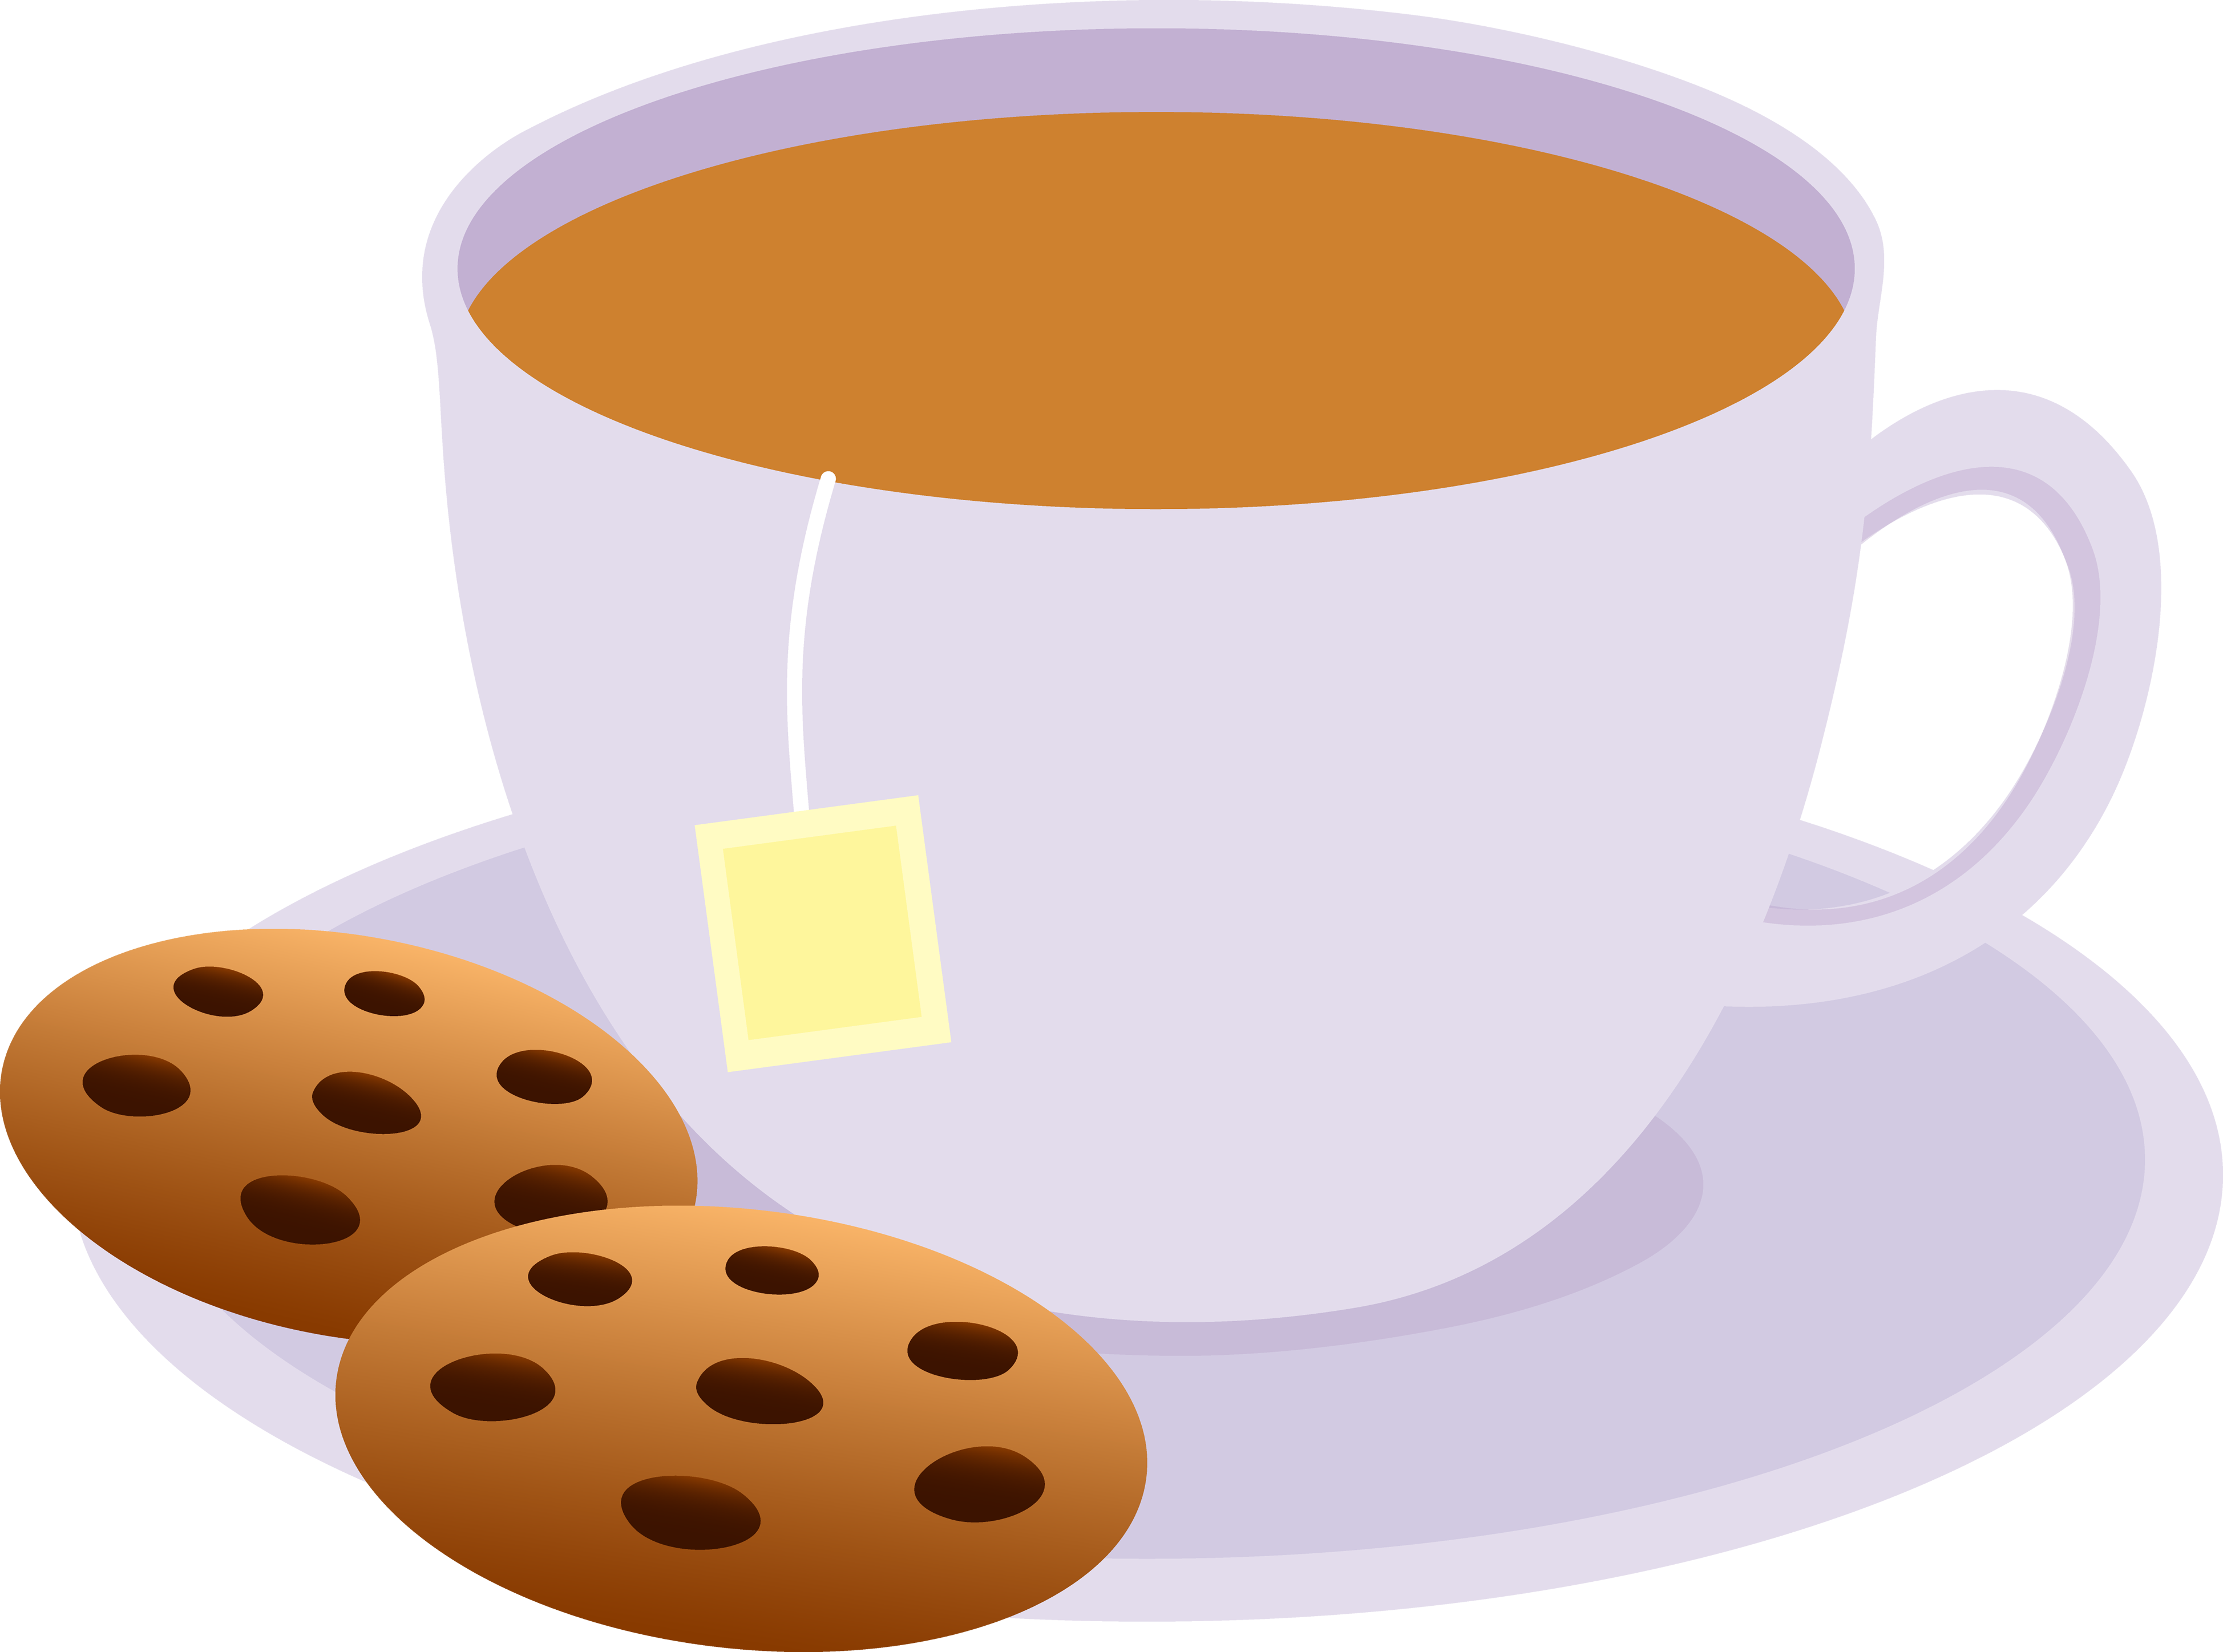 Teacup clipart refreshments Ten of Isolated Photos Cup